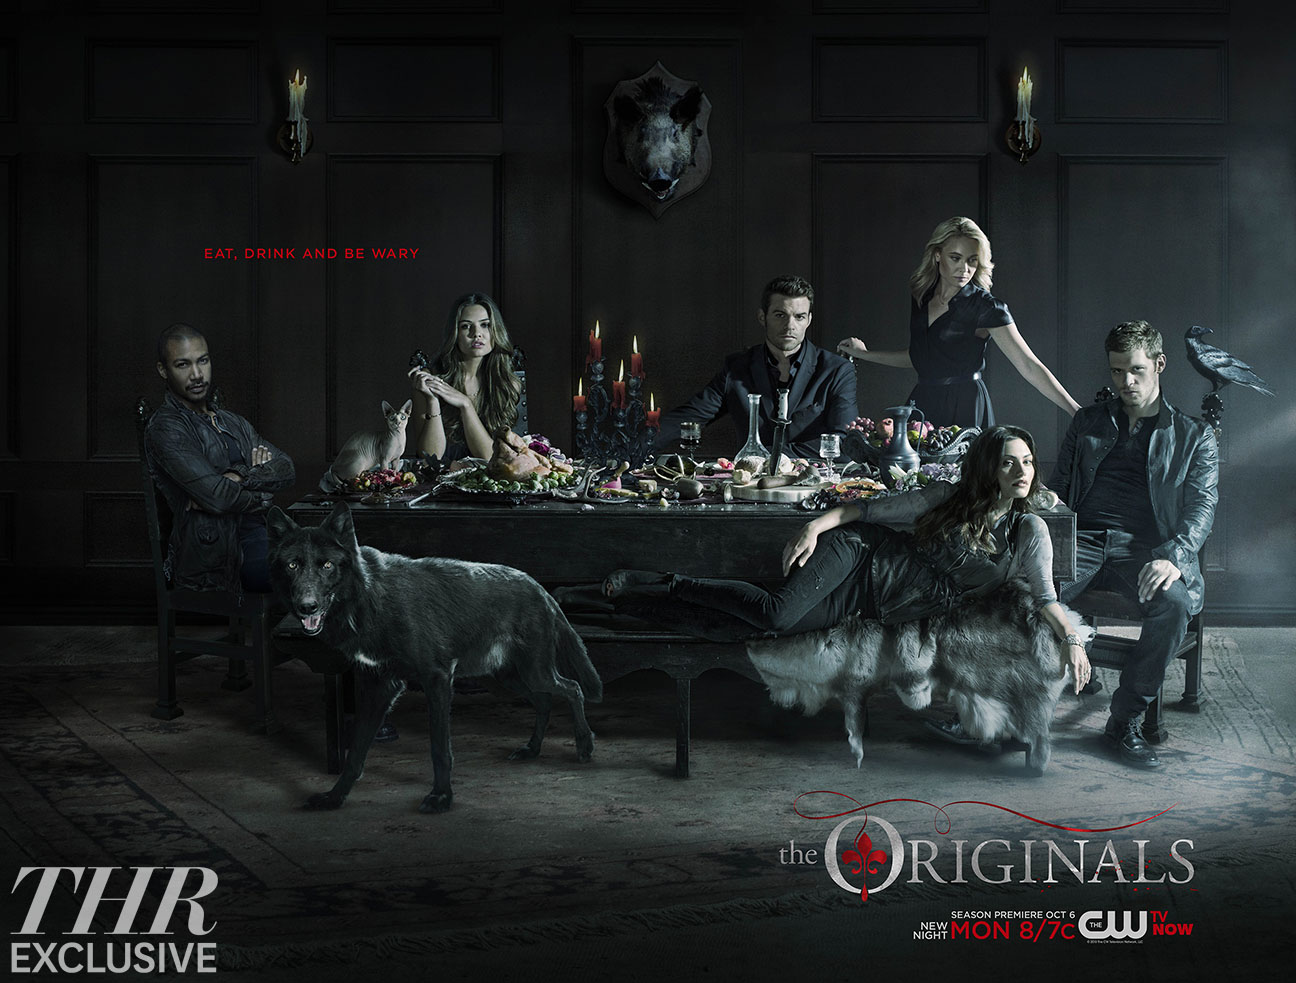 The Originals Season 2 Poster Warns of Potential Dangers   Hollywood 1296x983